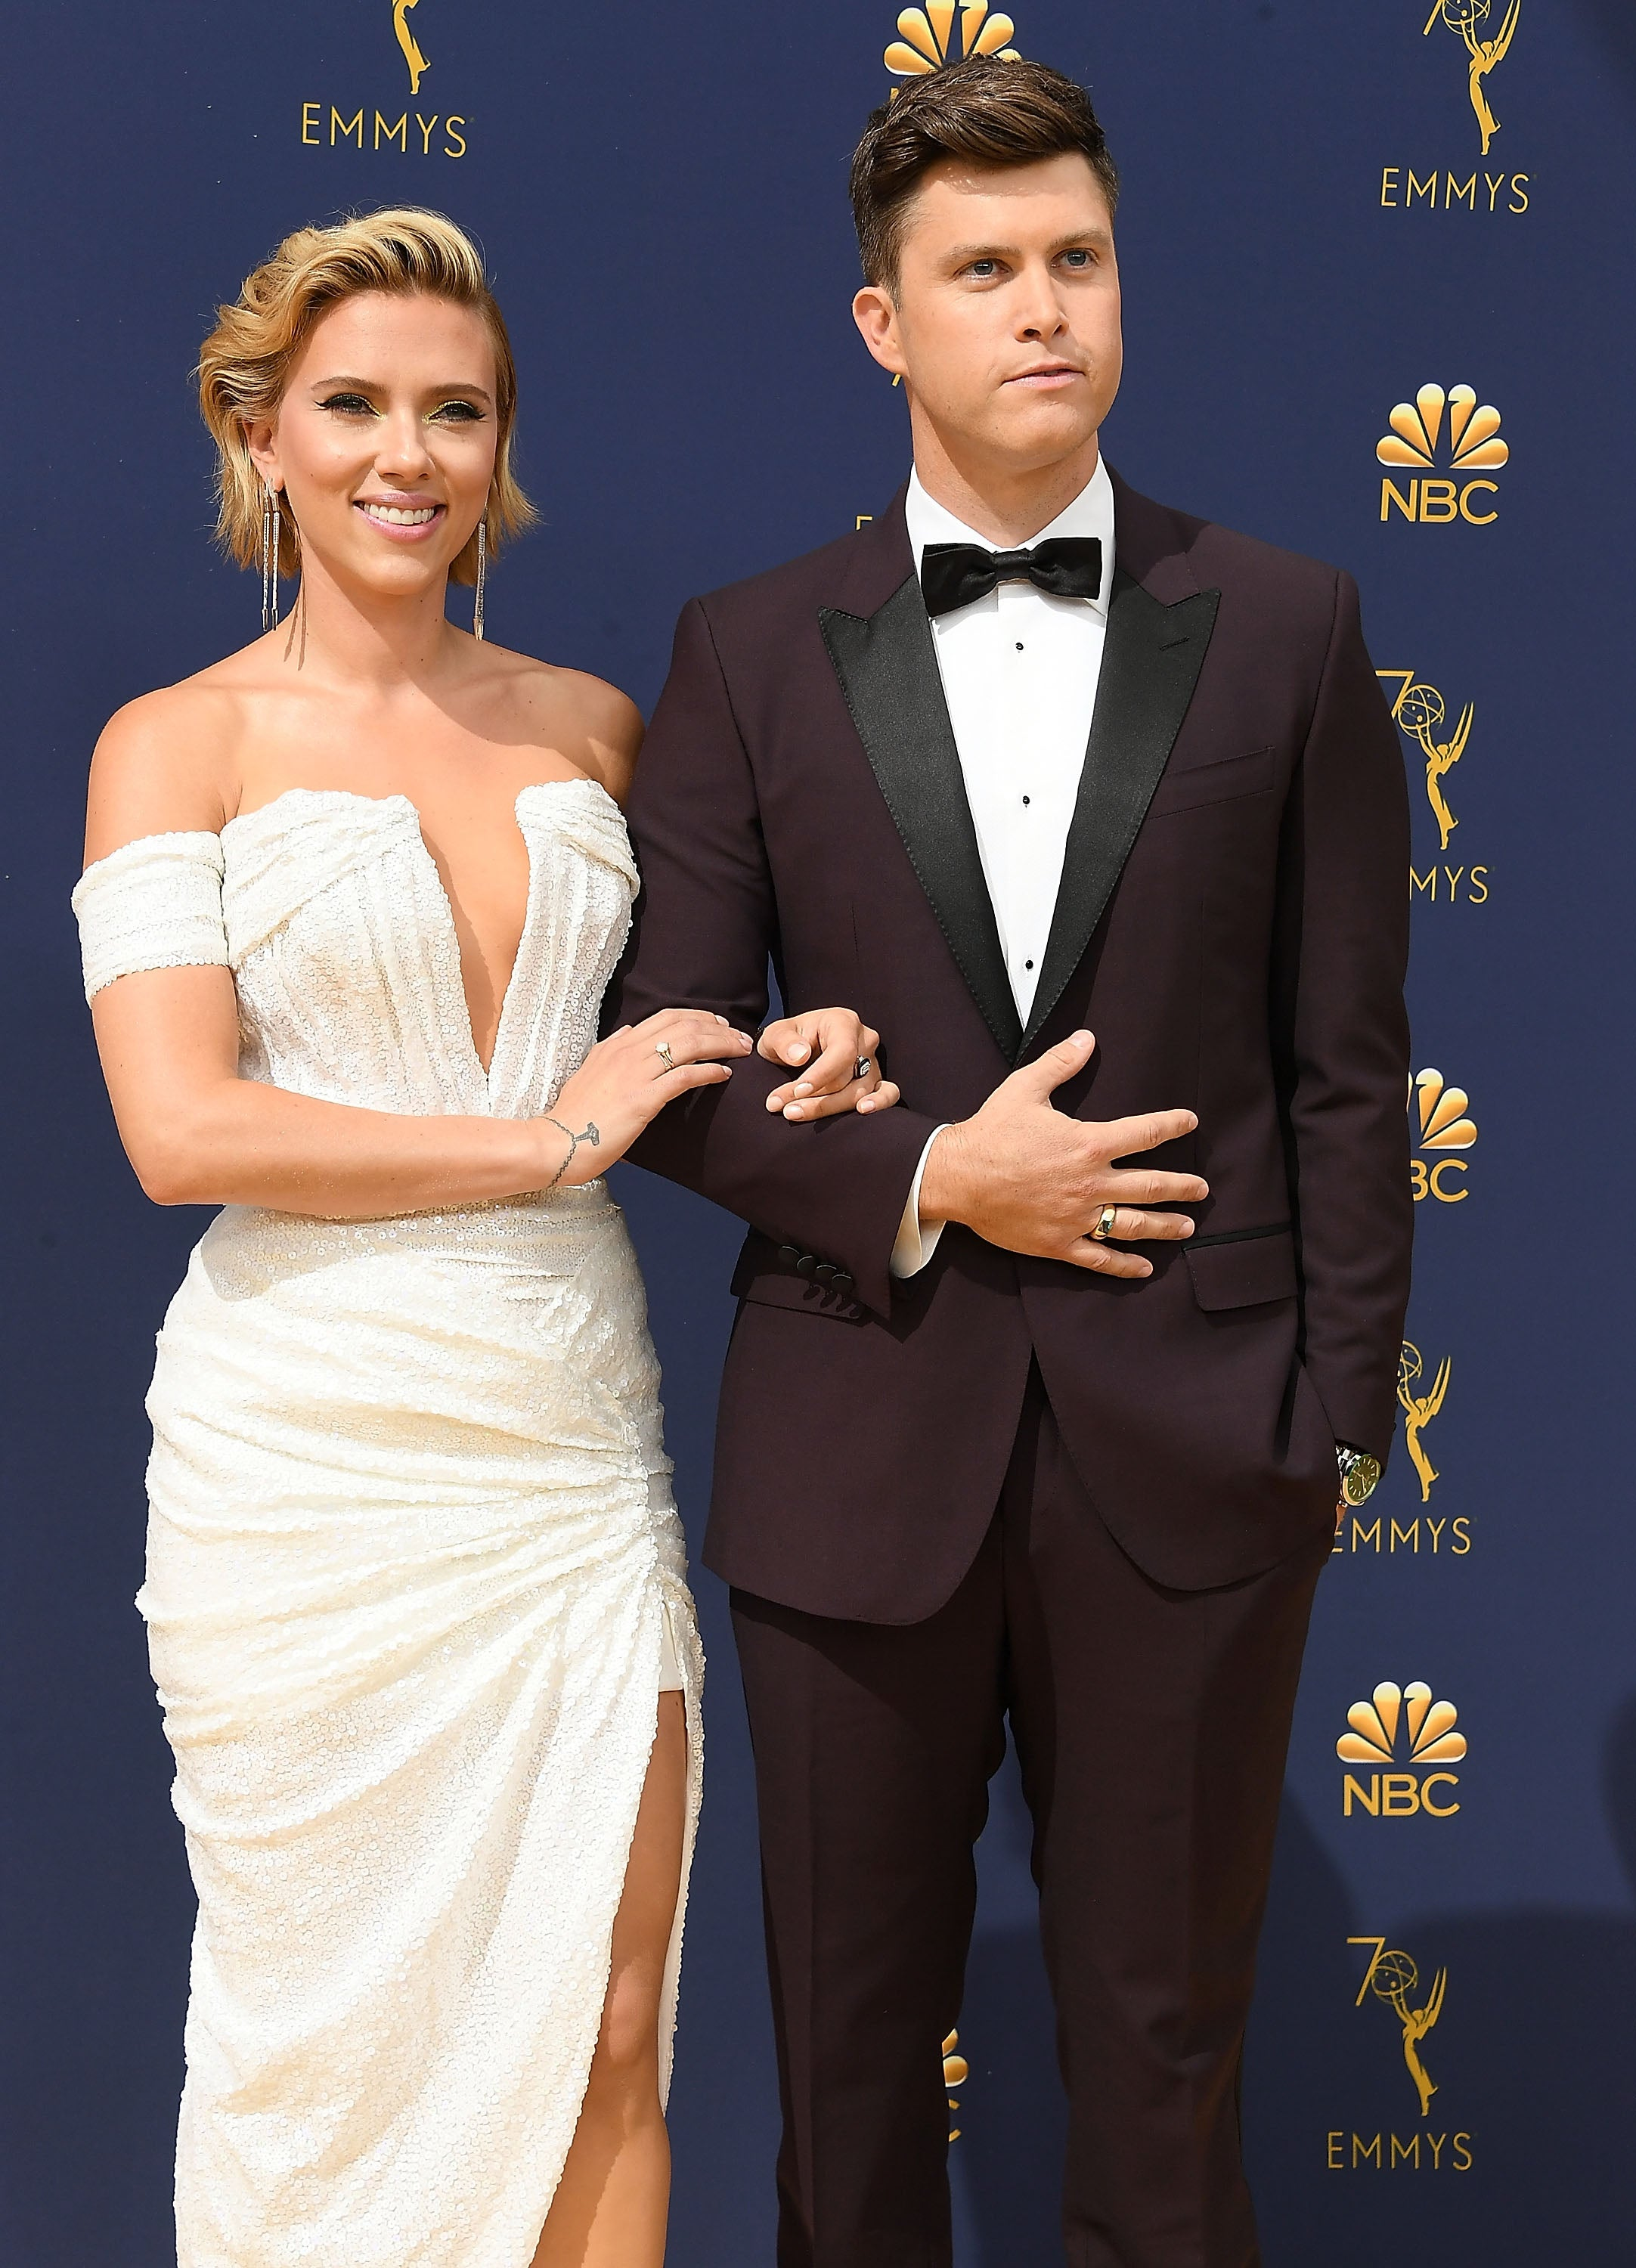 Scarlett Johansson Has One Very Explicit Rule For Colin Jost's Bachelor Party